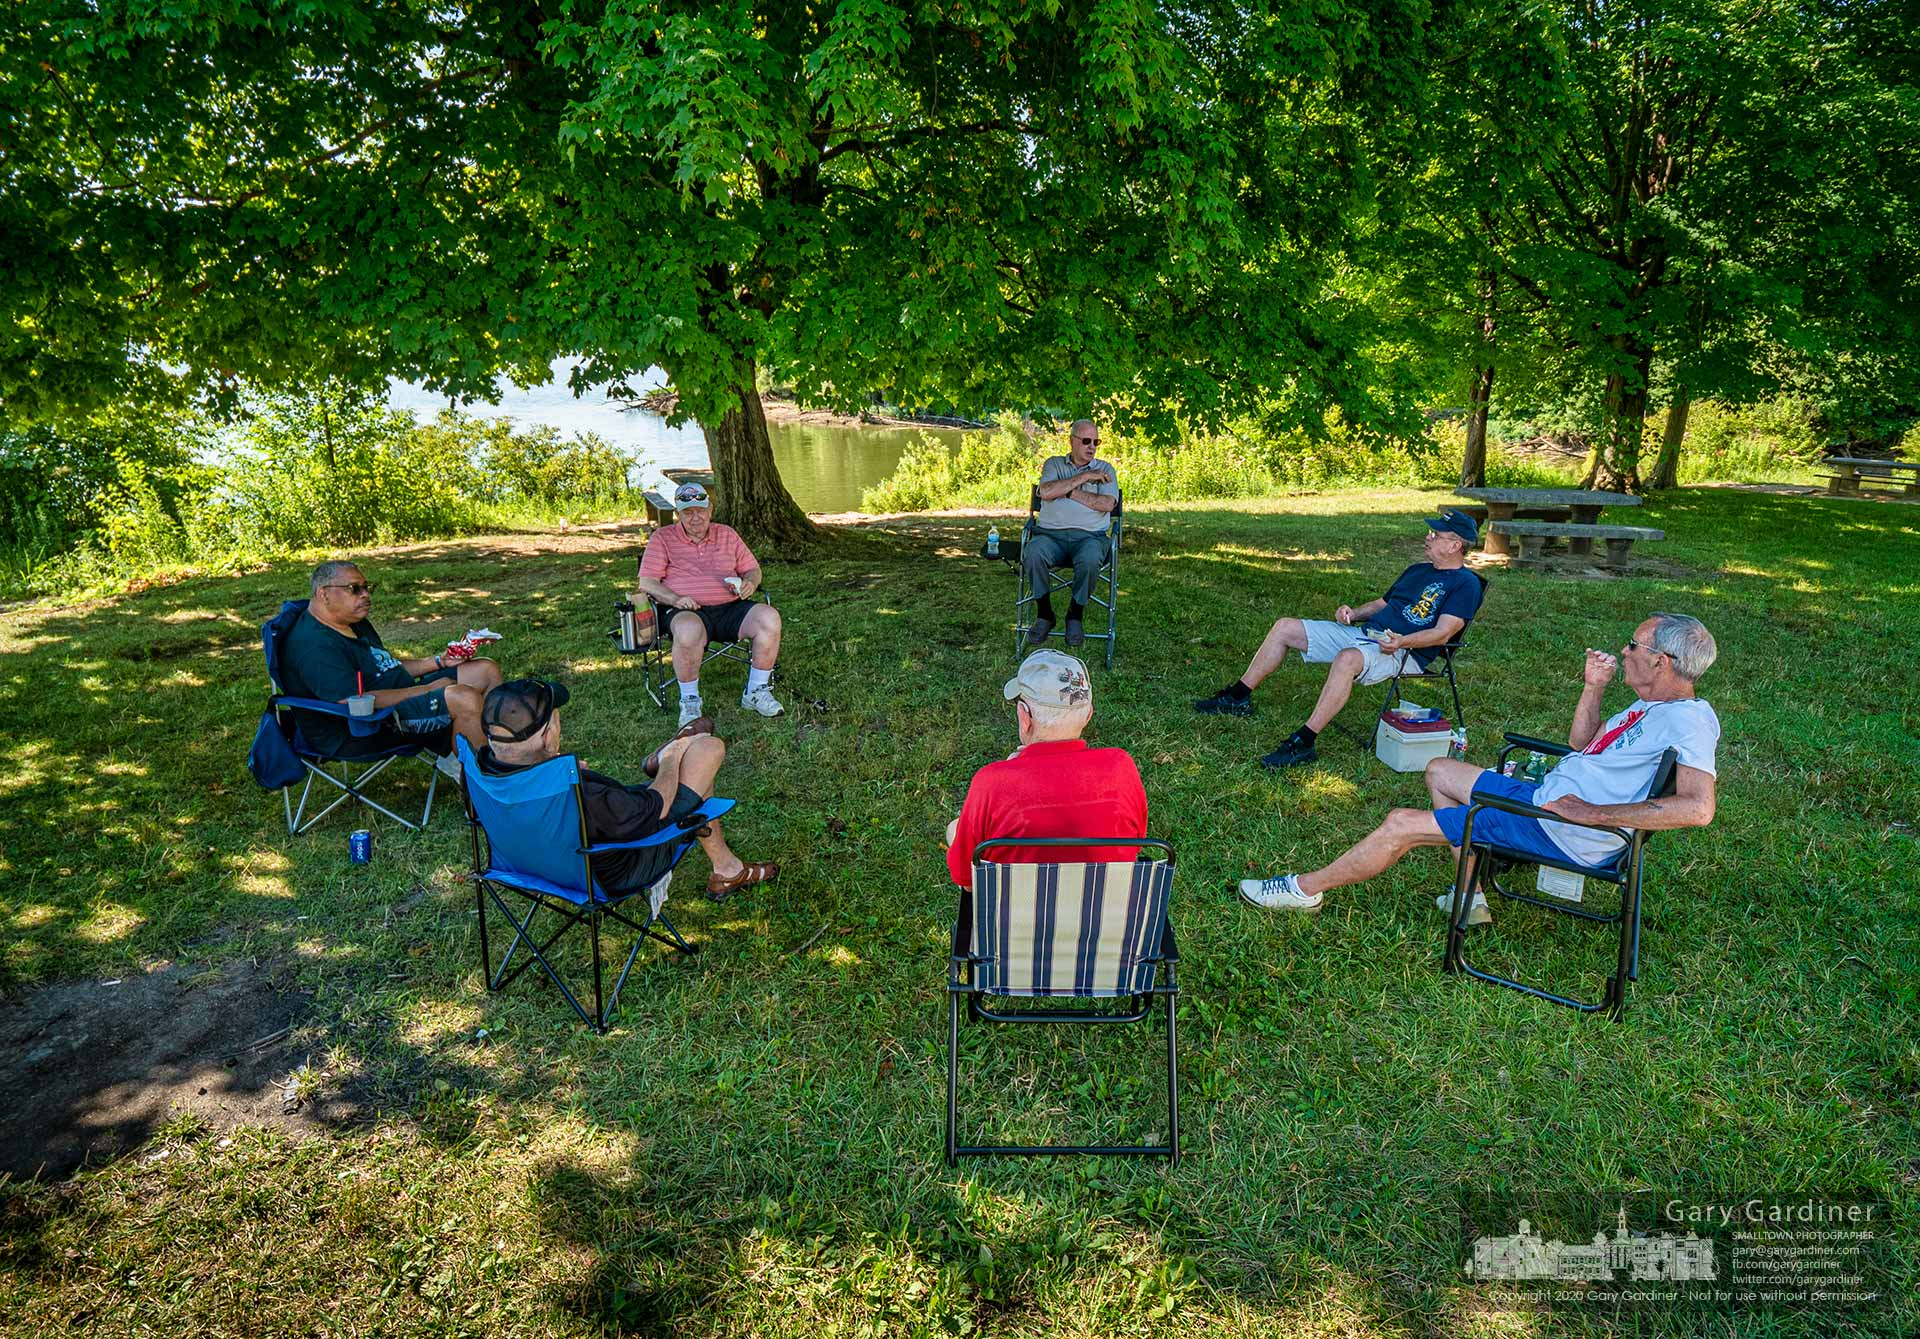 A group of Westerville Senior Center members has their weekly meeting at Red Bank Park at Hoover Reservoir where their biggest complaint is the closing of the pool table at the center which was their favored place to meet before the pandemic. My Final Photo for July 29, 2020.